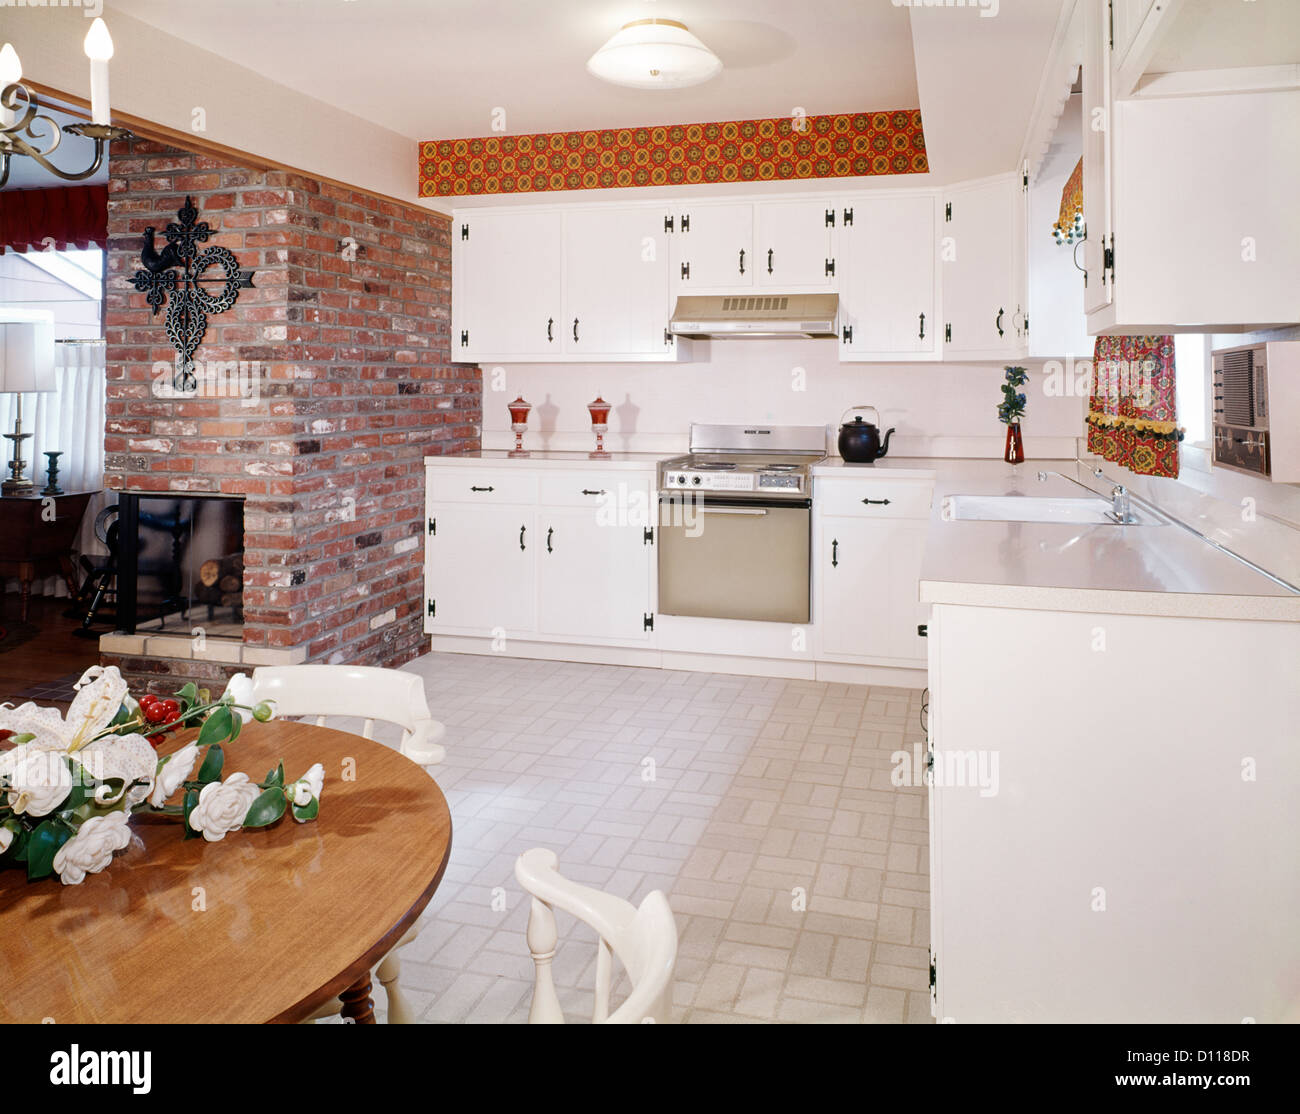 1960s Kitchen 1960s kitchen interior with brick wall and white country cabinets